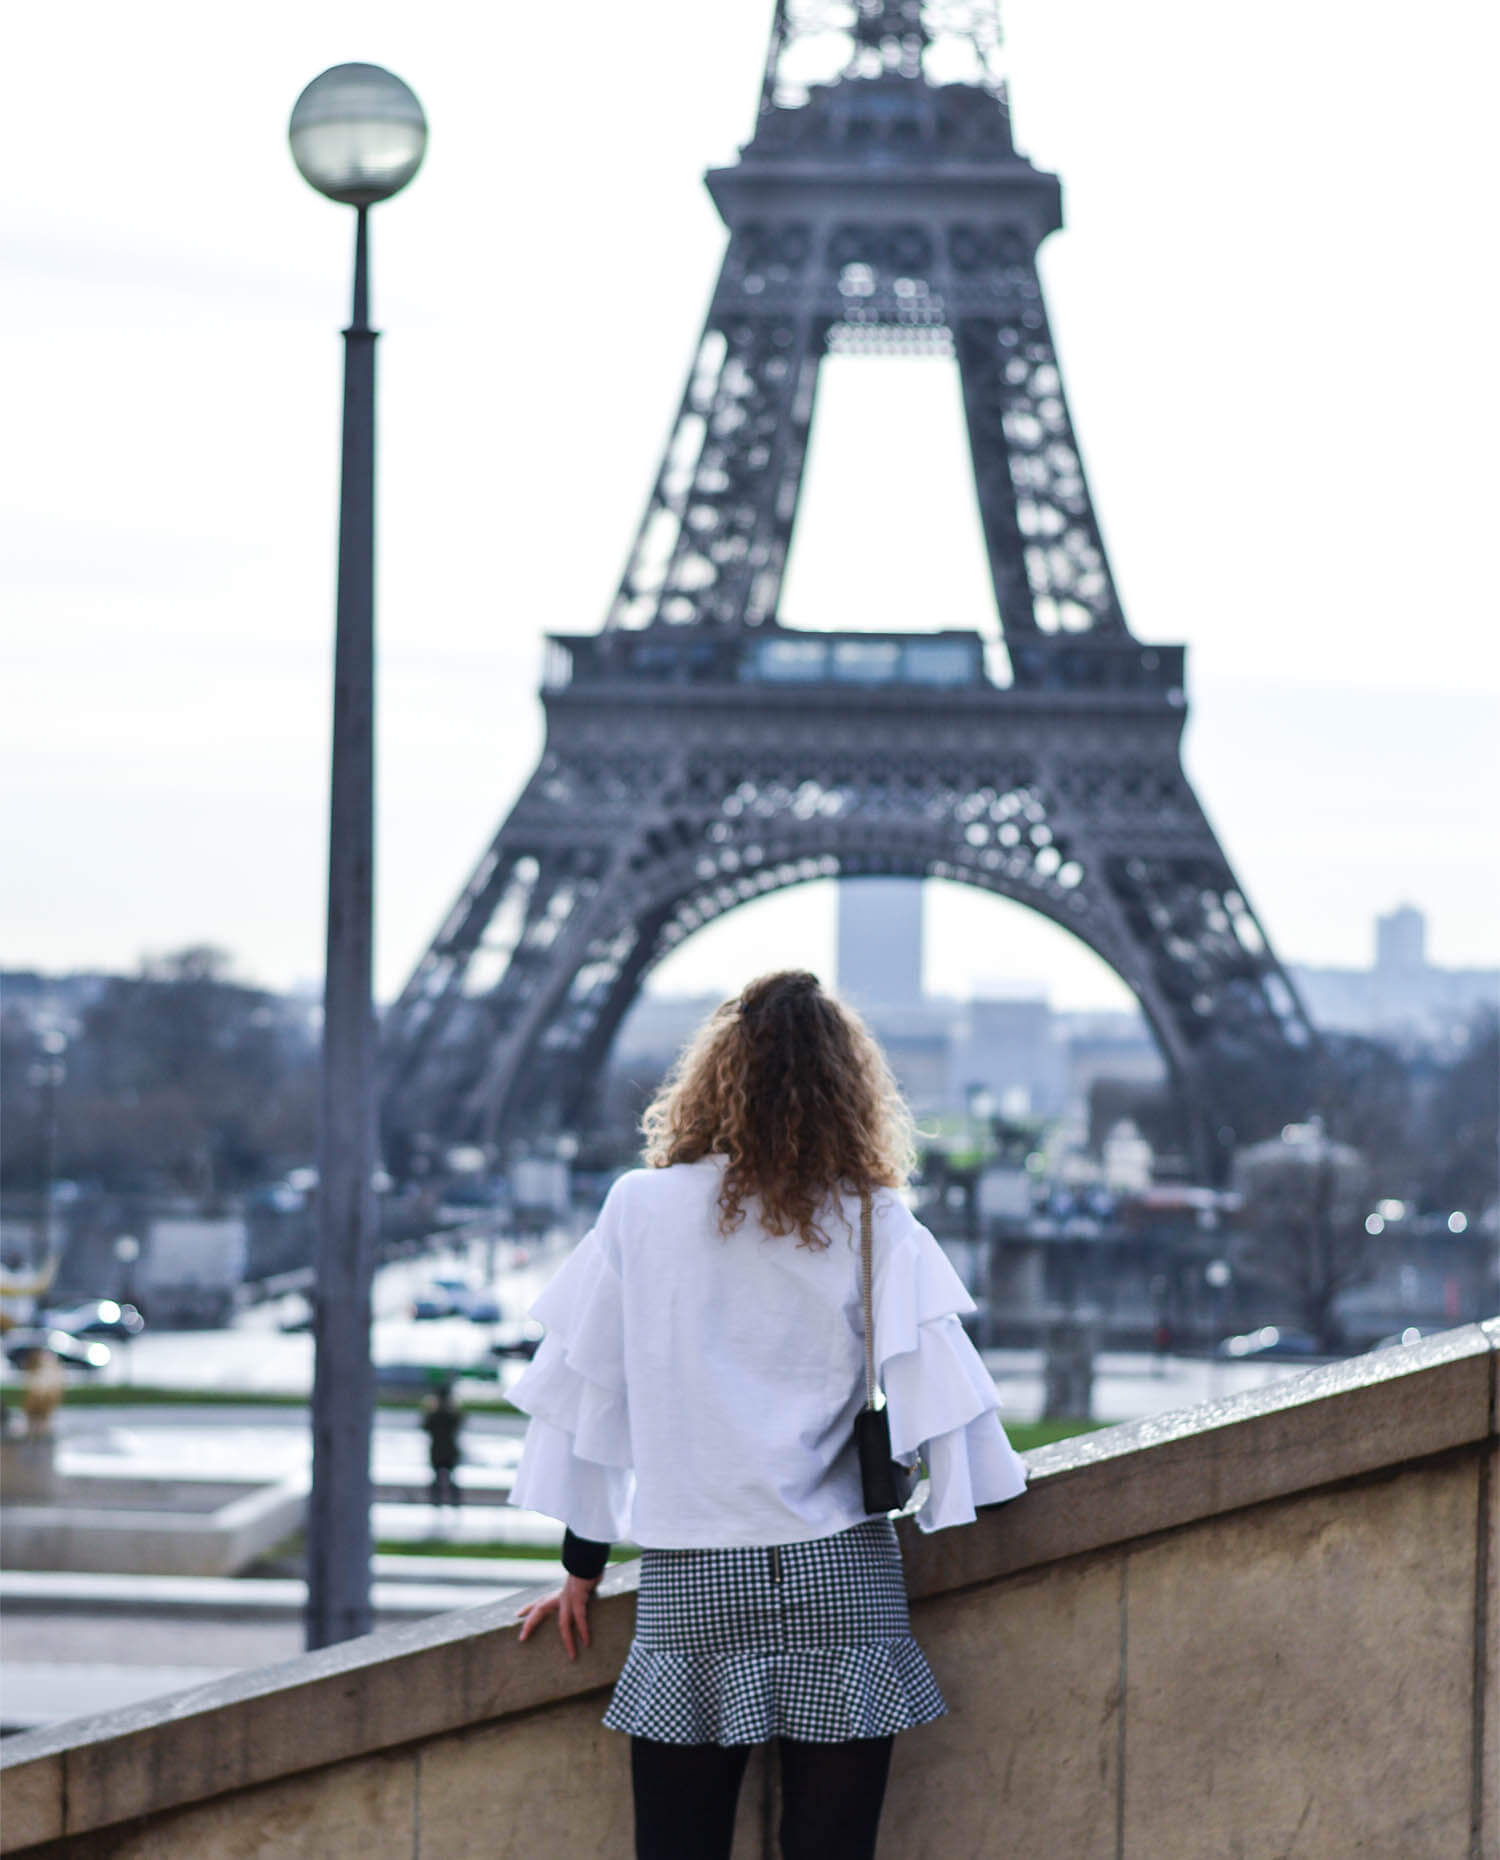 Kationette-Fashionblog-Kationette-Outfit-Volants-Vichy-Check-Chanel-EiffelTower-Paris